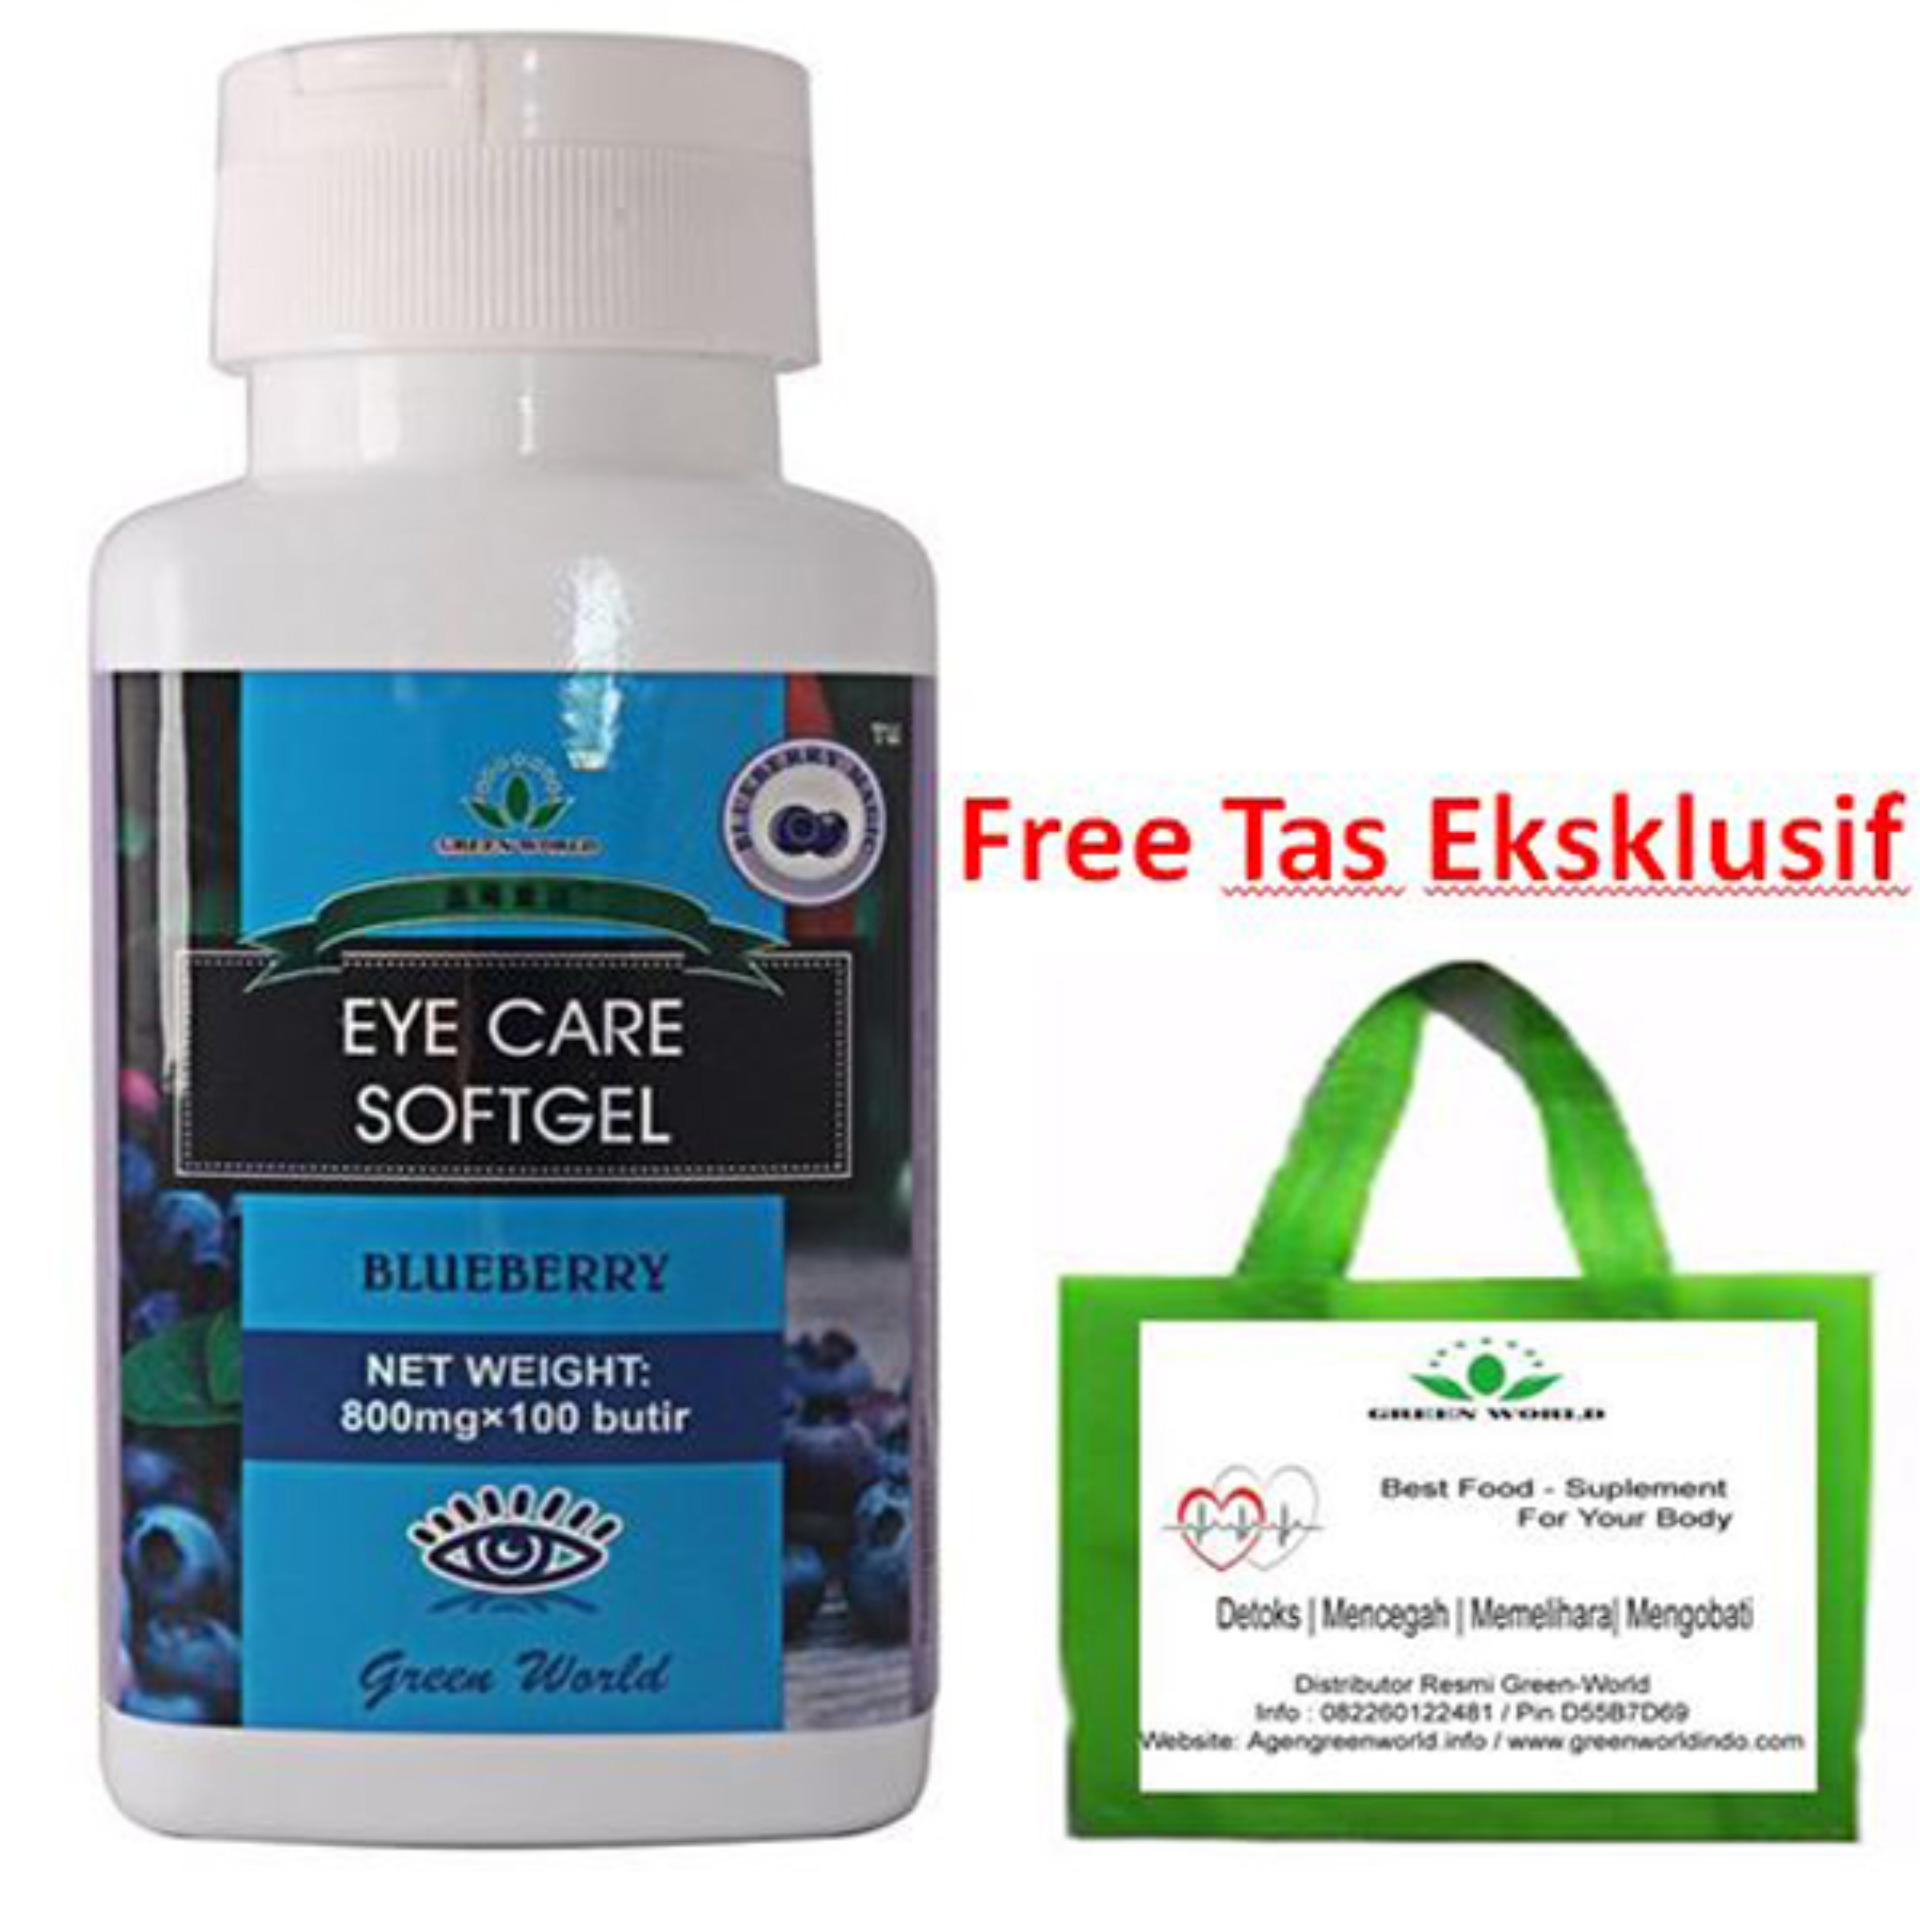 Kualitas Green World Eye Care Softgel Bonus Tas Ekslusif Green World